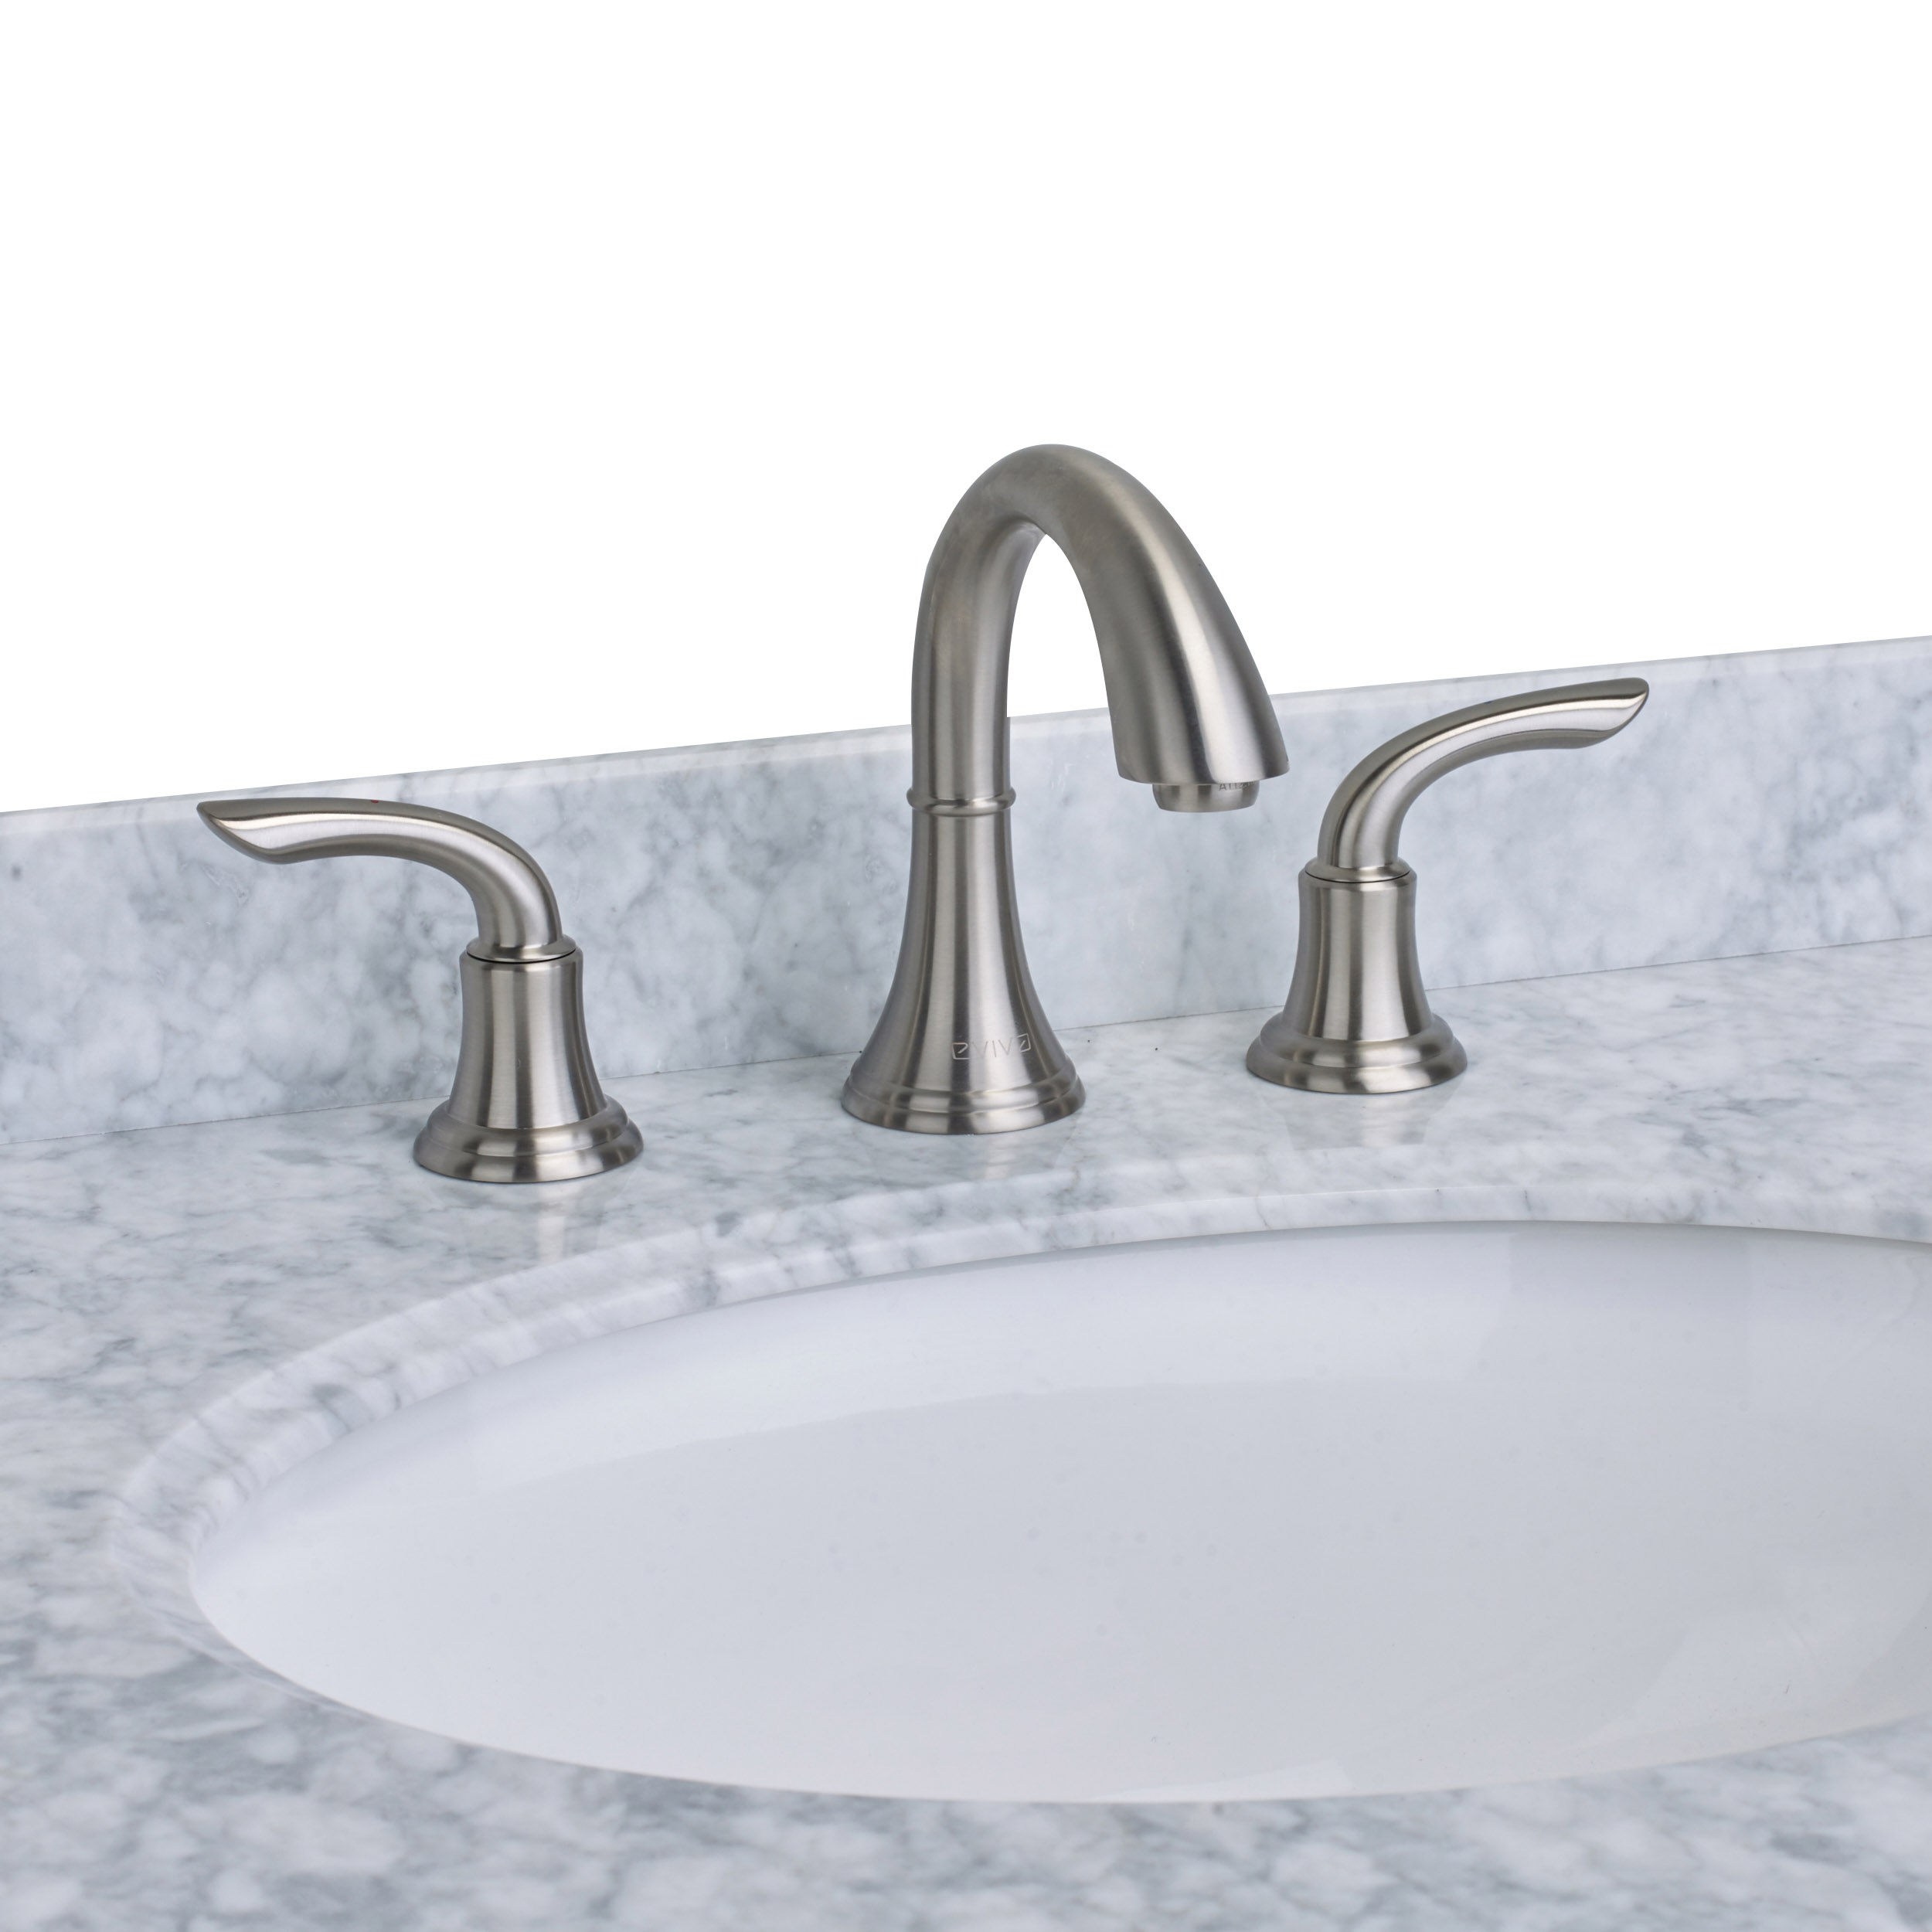 All Bathroom Faucets